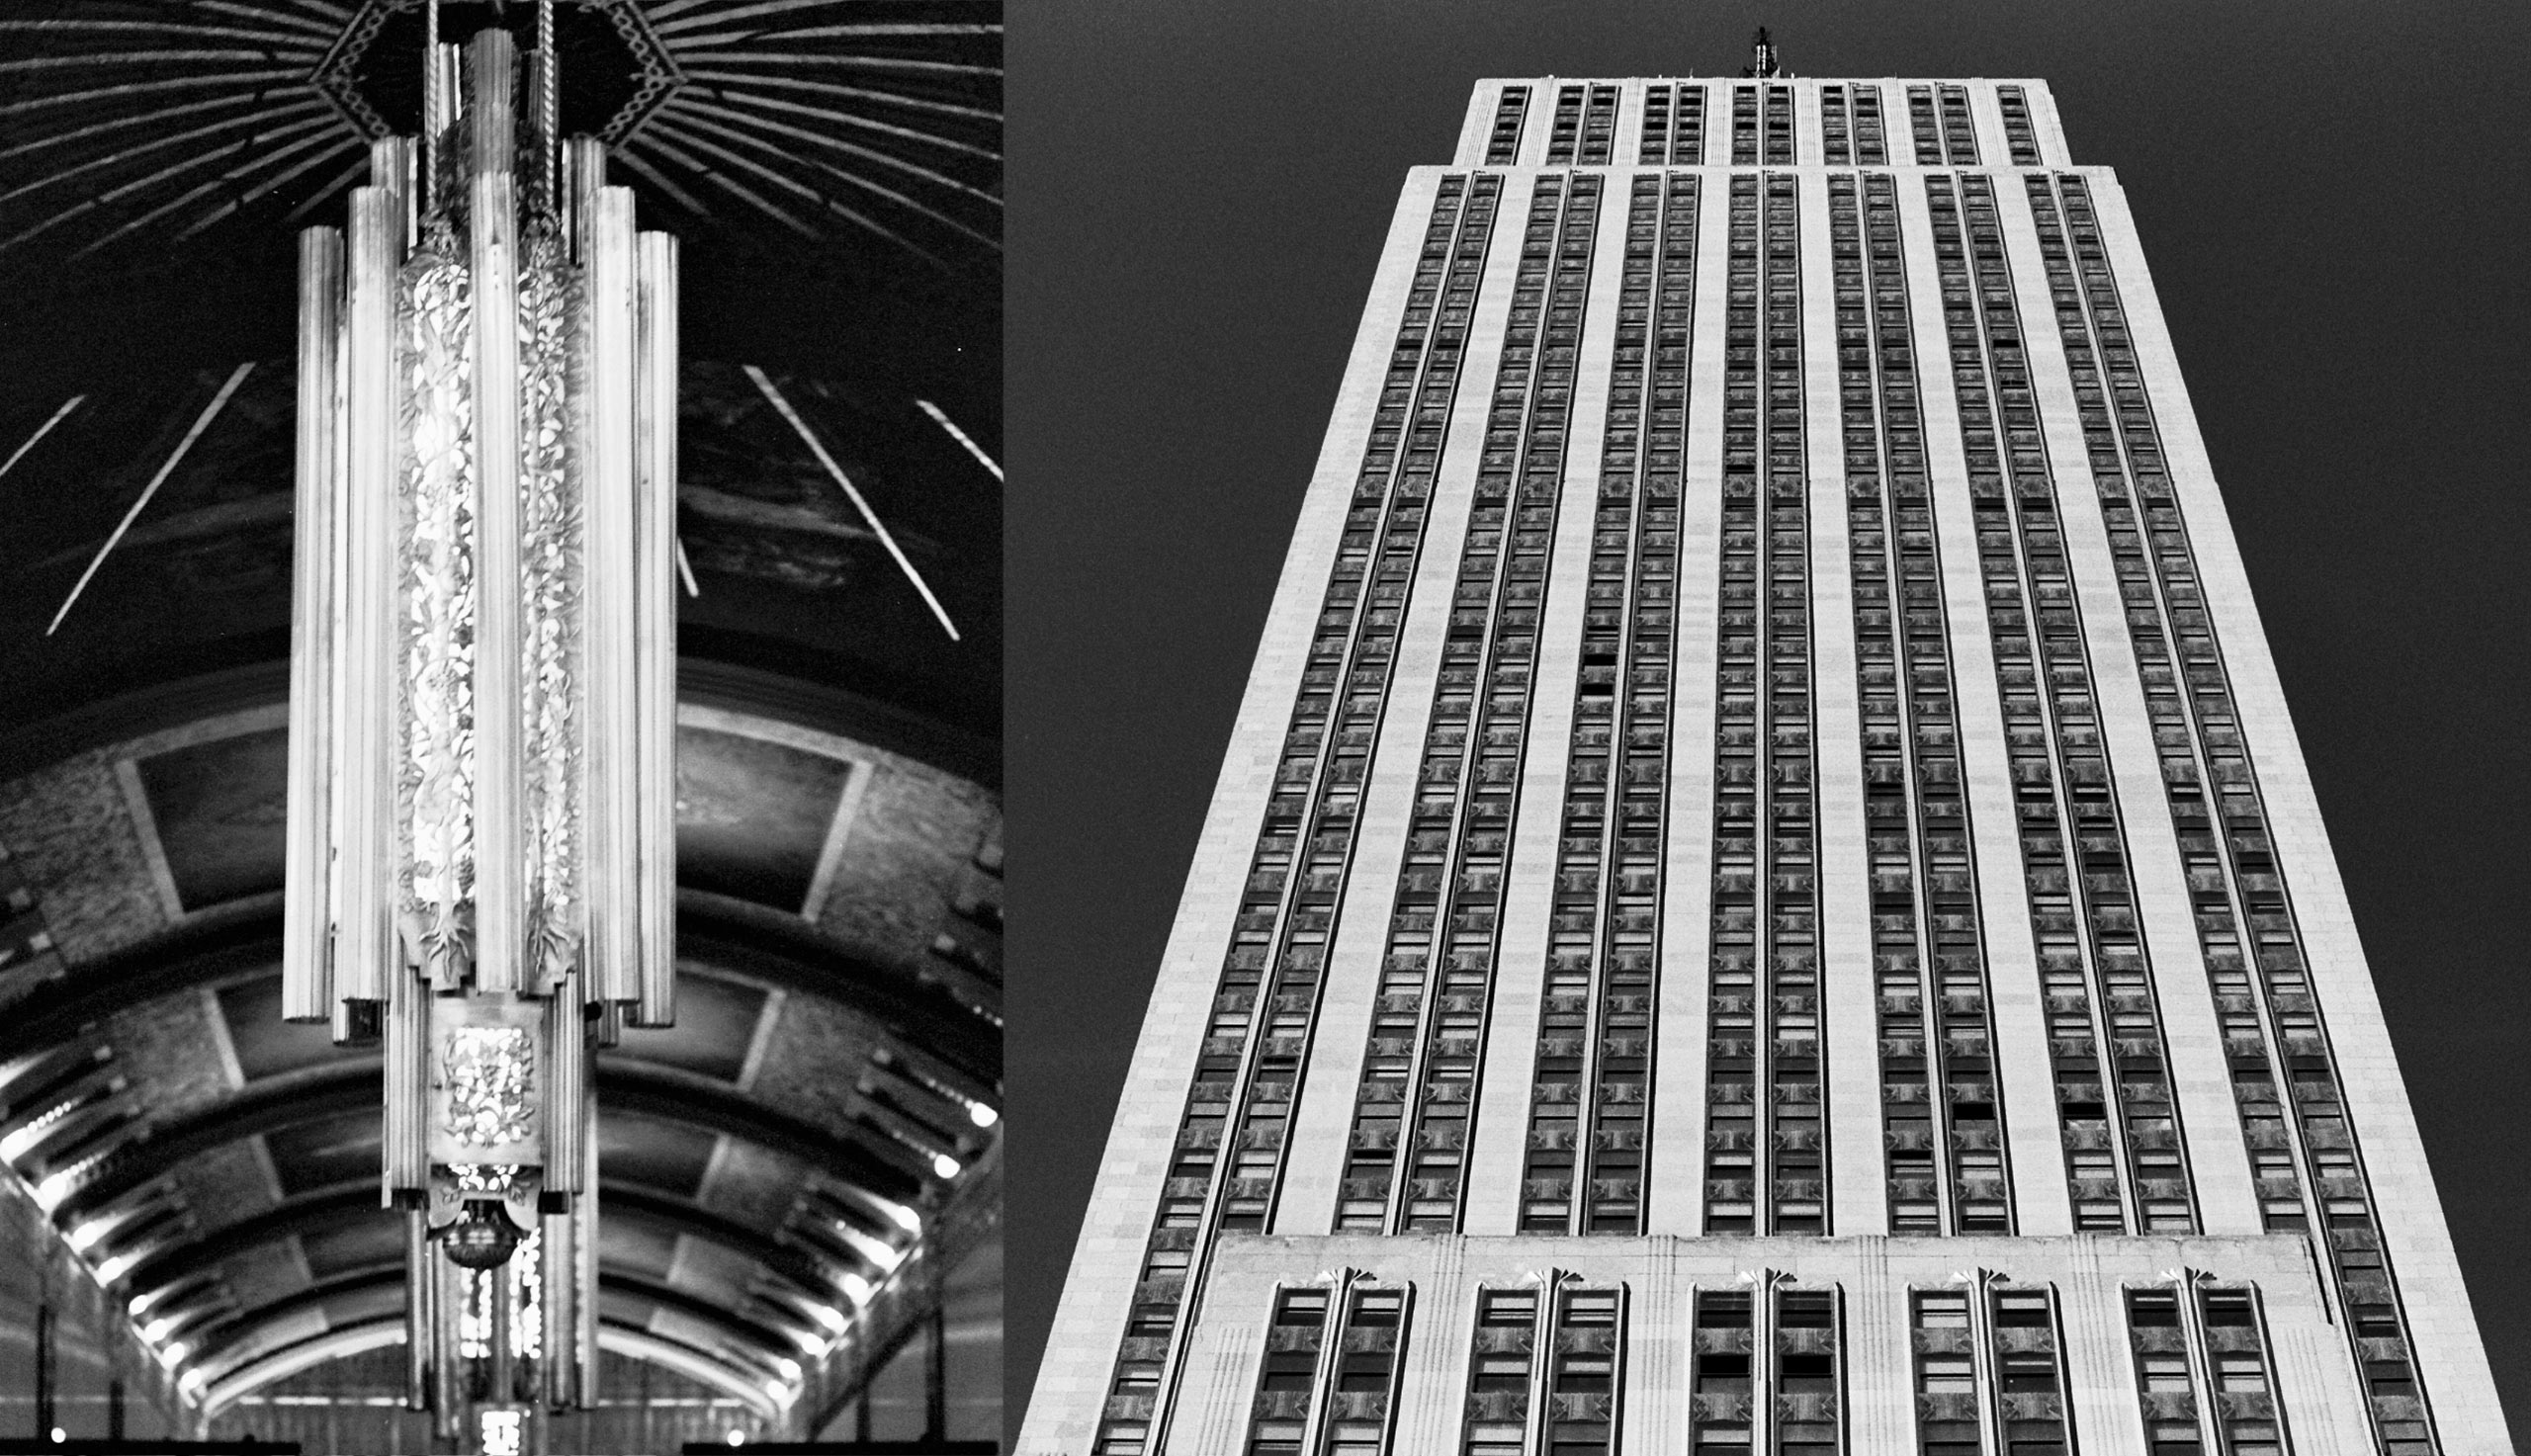 Left: Chandeliers inside the lobby at 100 Barclay. Right: the Empire State Building